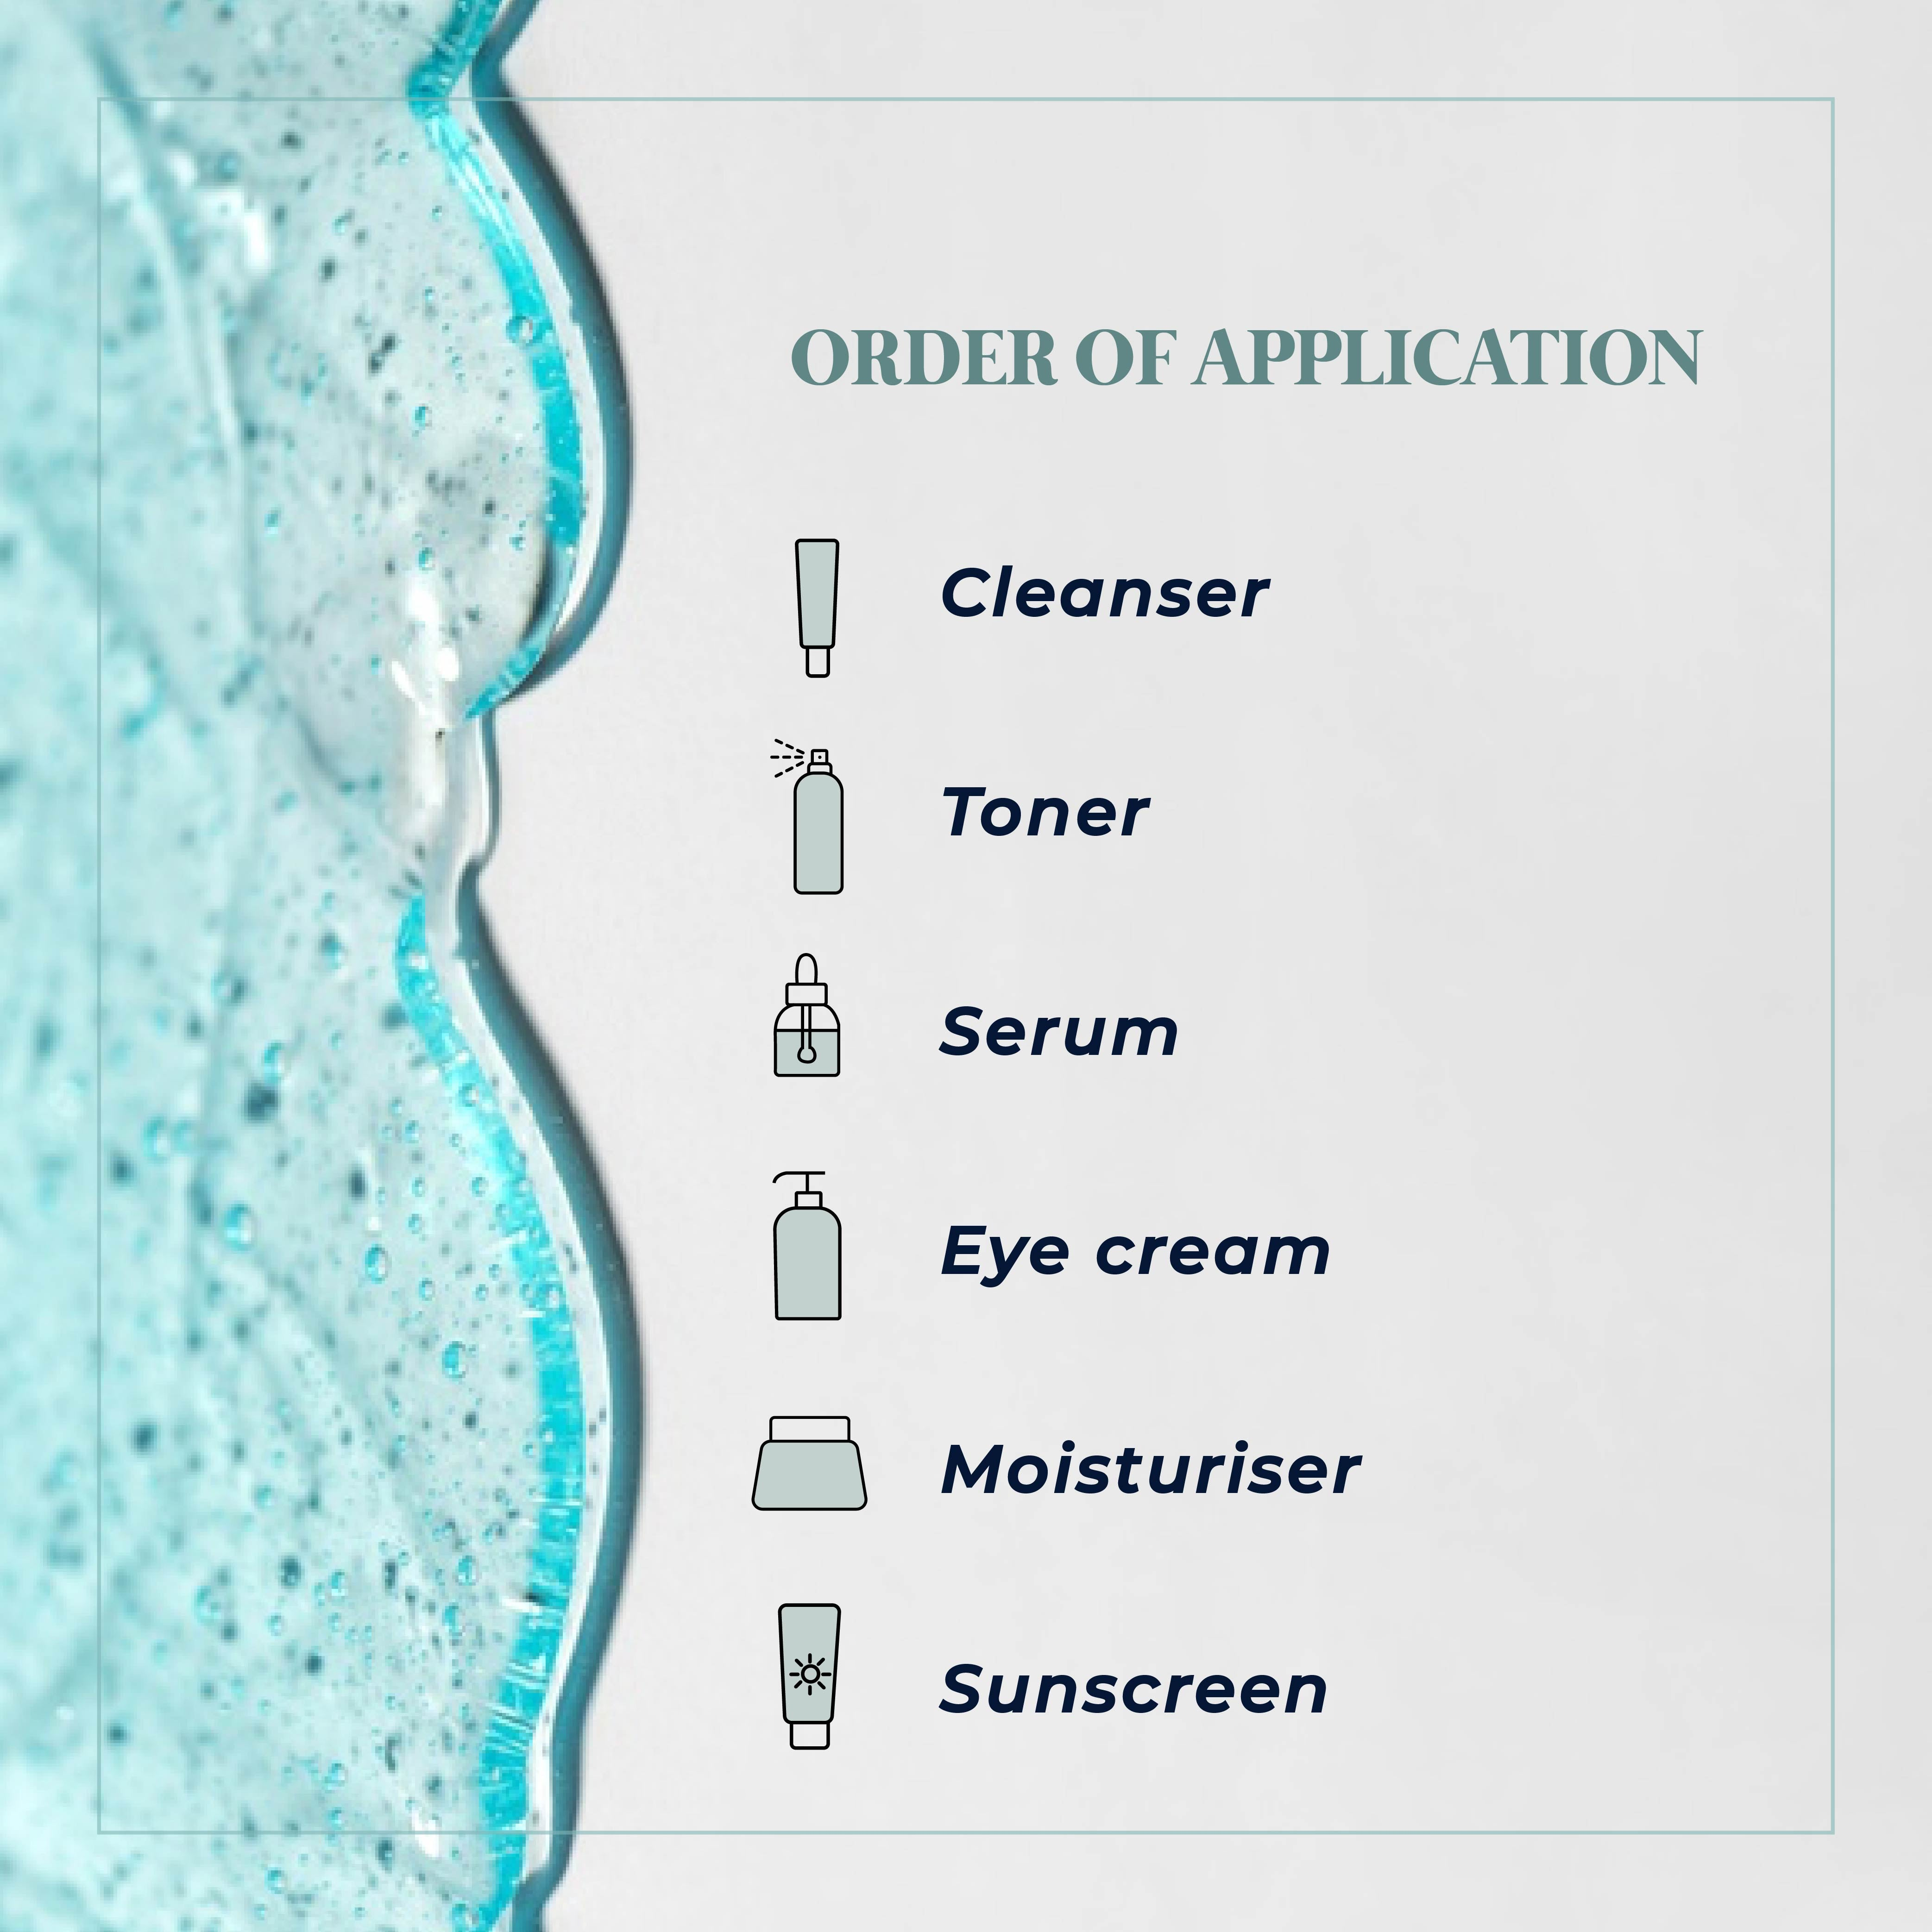 This is an image of the order in which products can be used.